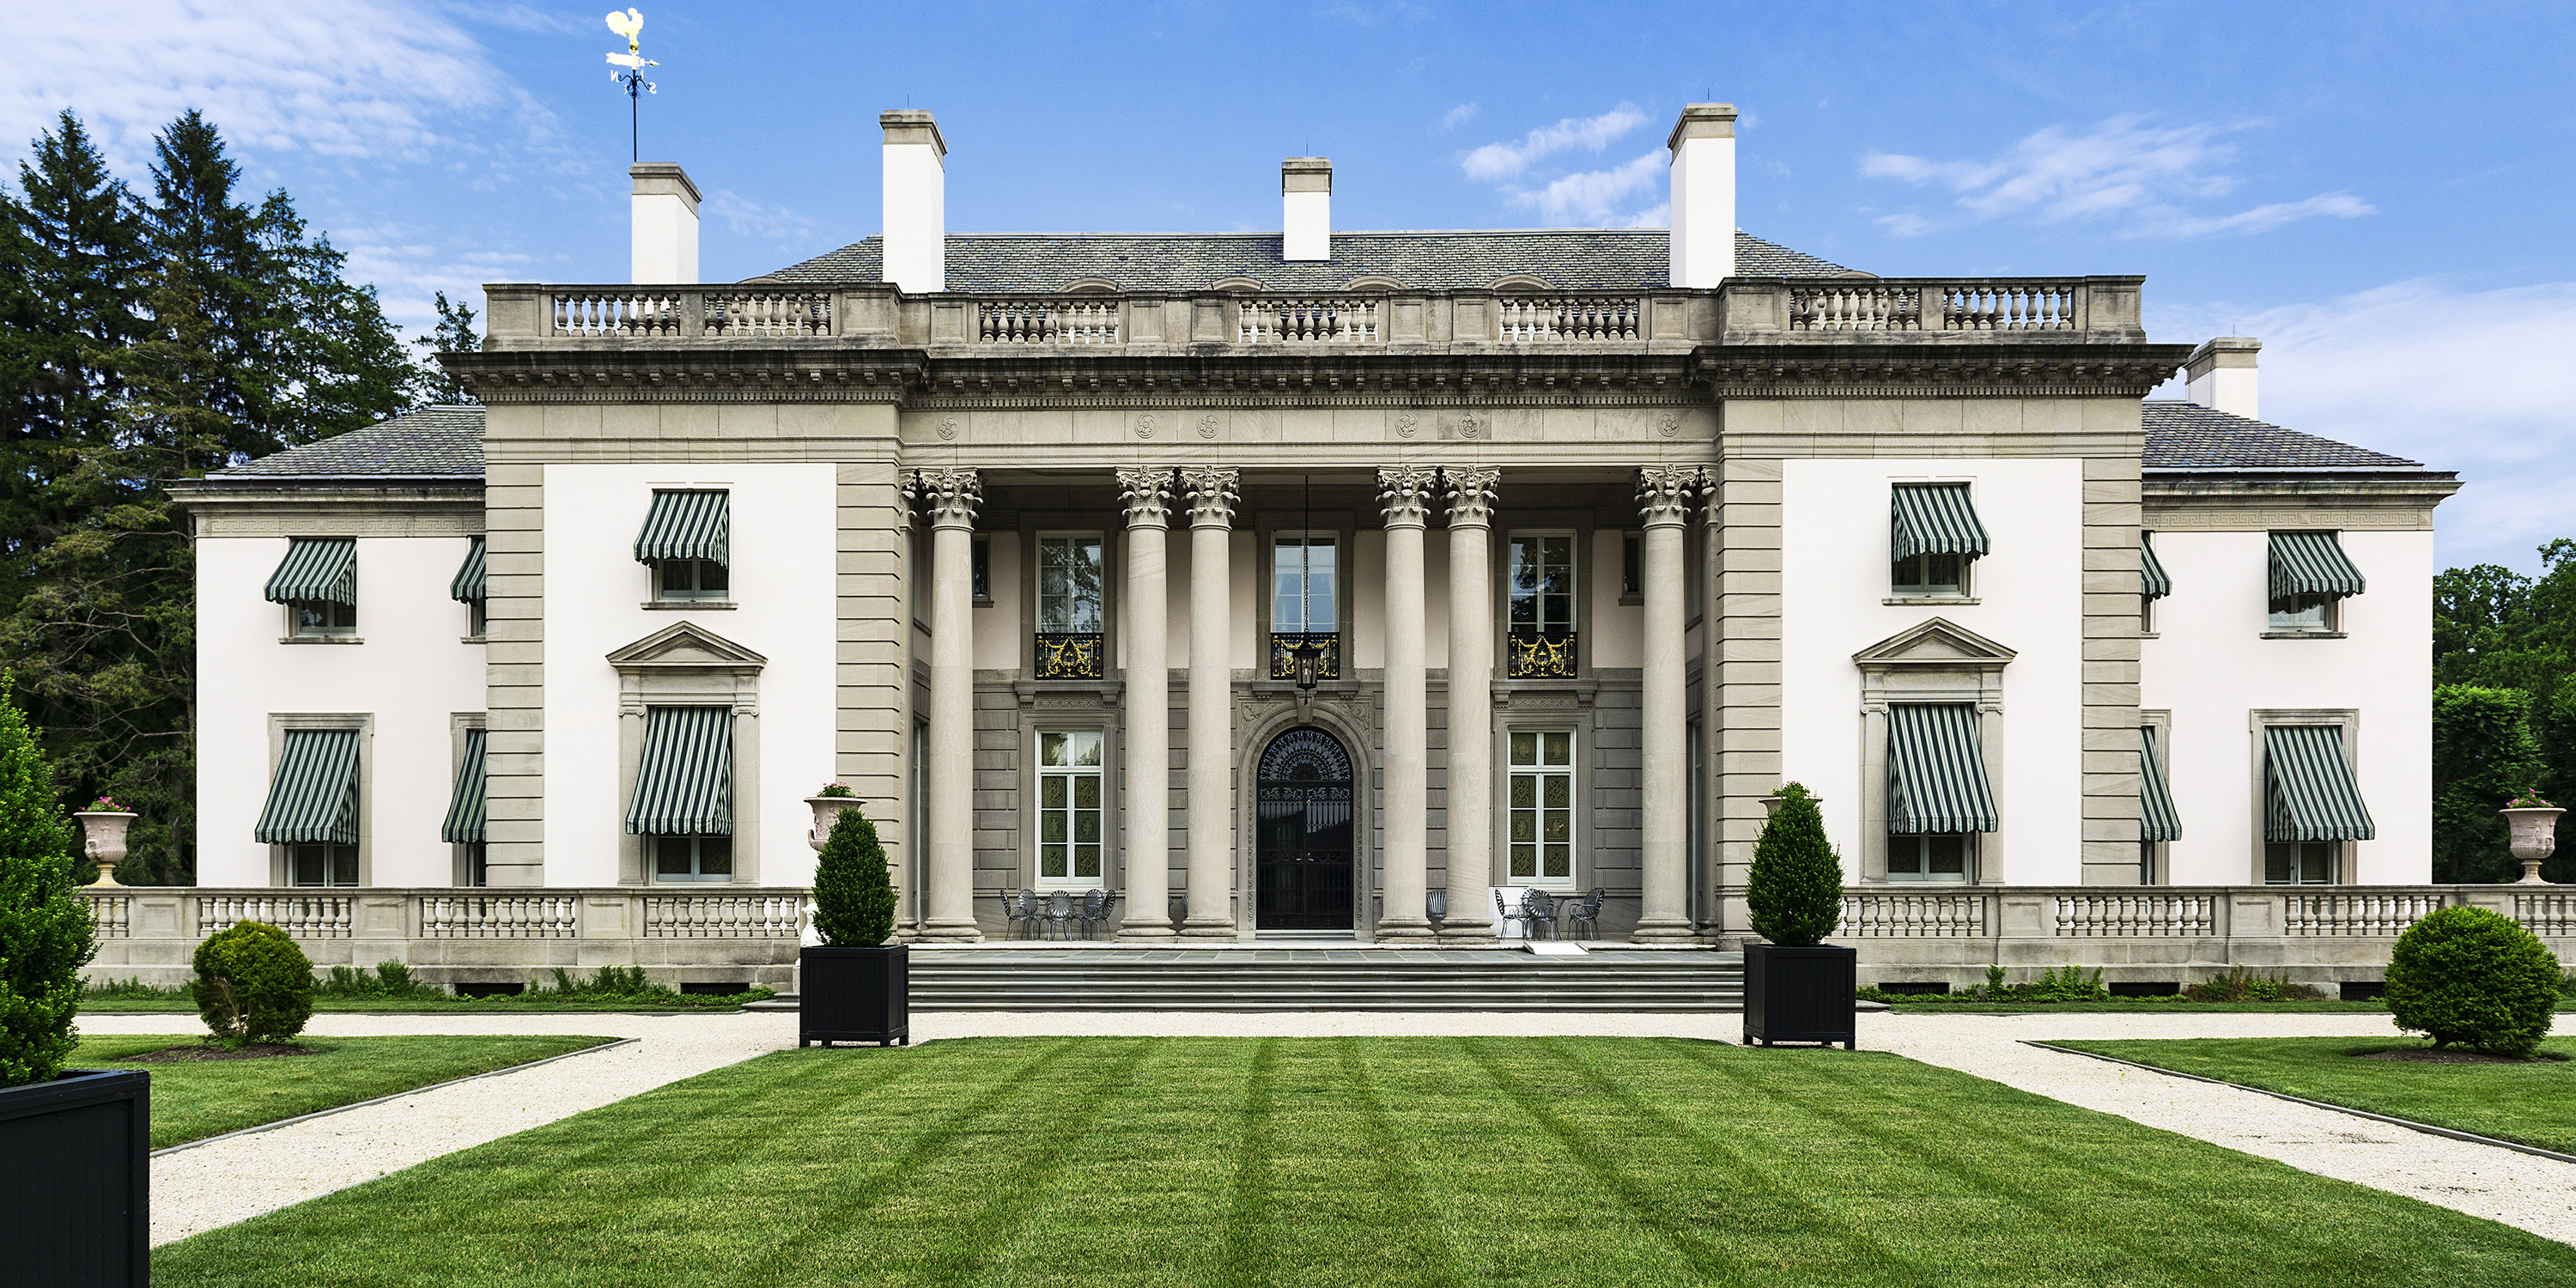 Tremendous 50 Of The Most Famous Historic Houses In America Historic Homes Inspirational Interior Design Netriciaus